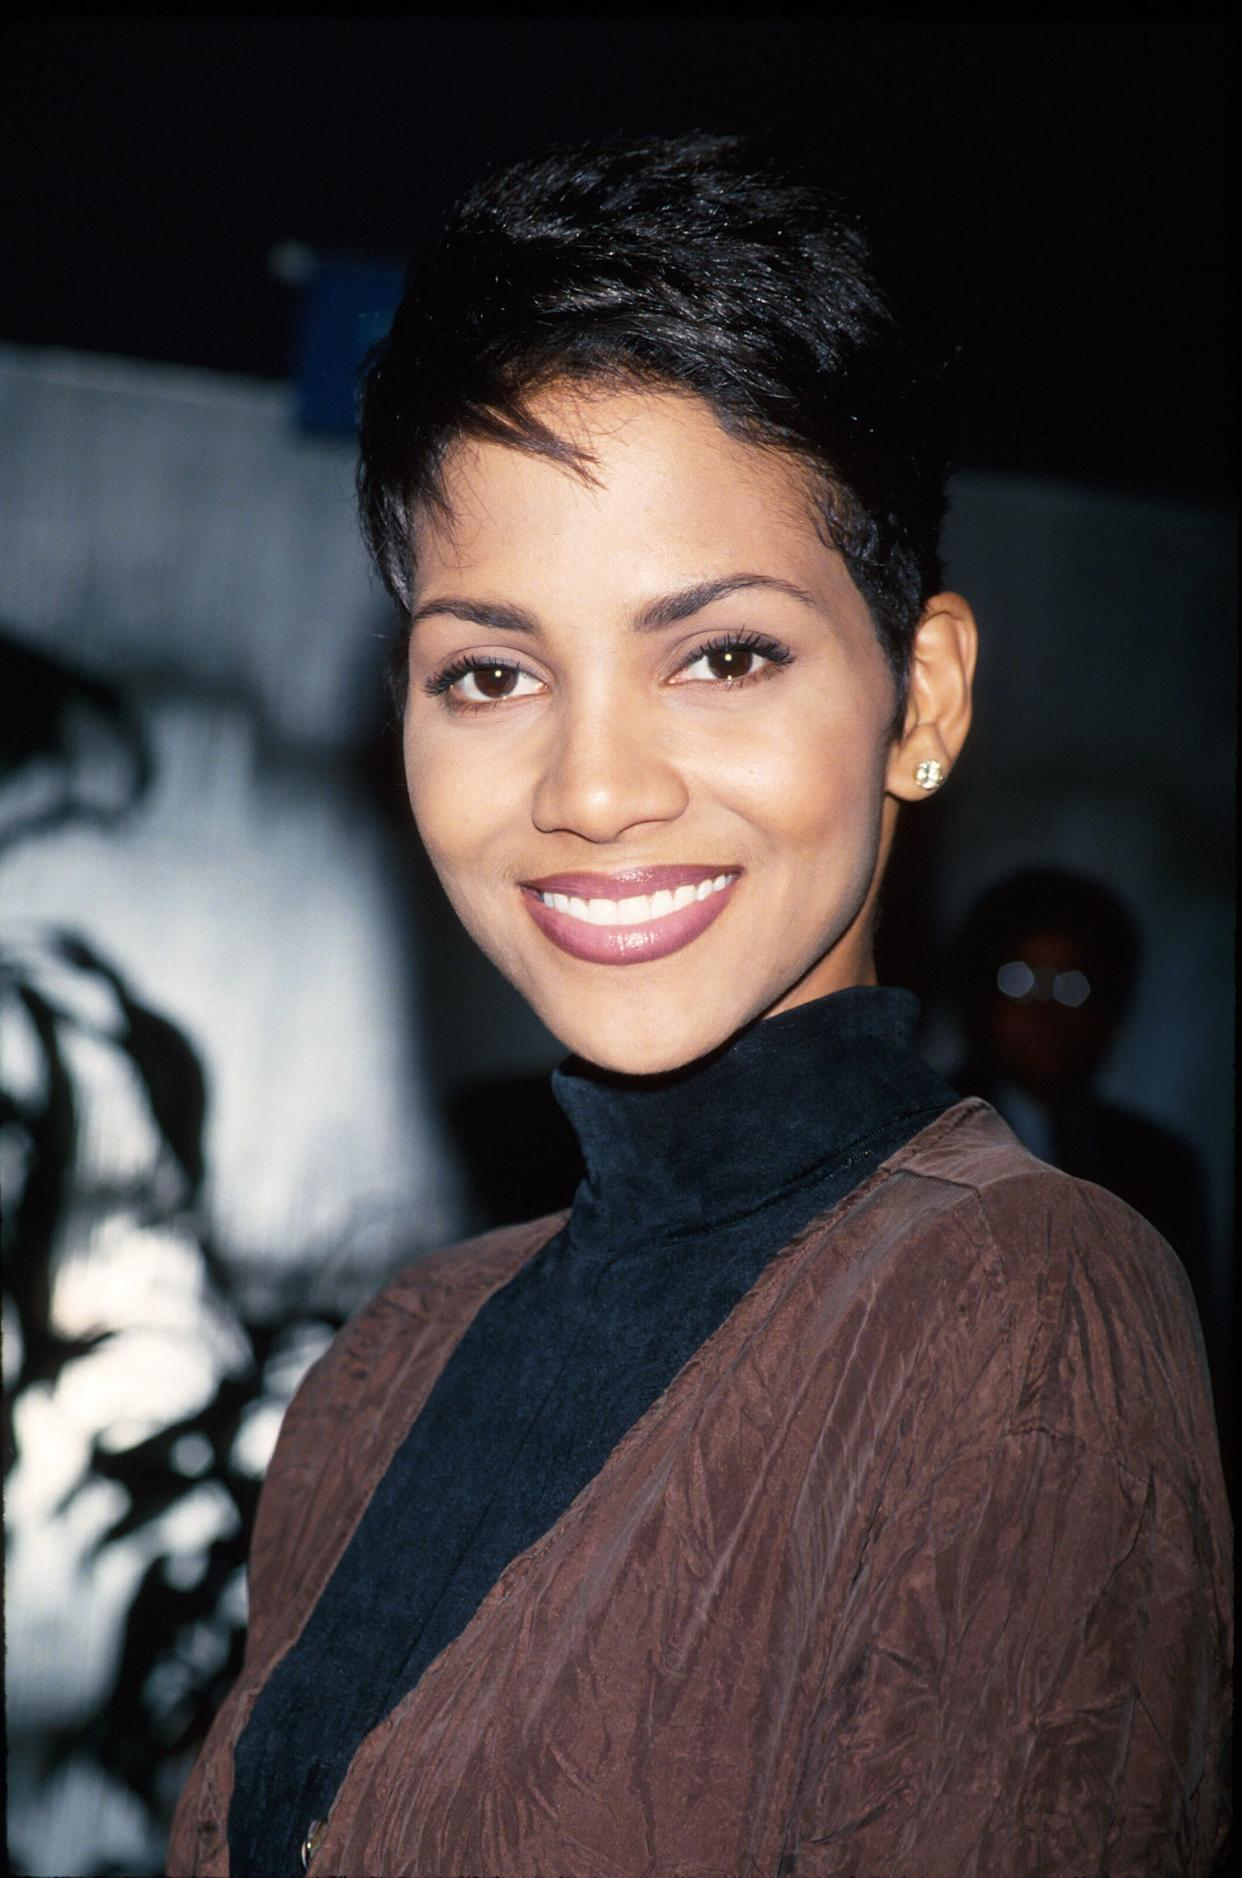 The actress photographed sometime in the '90s.